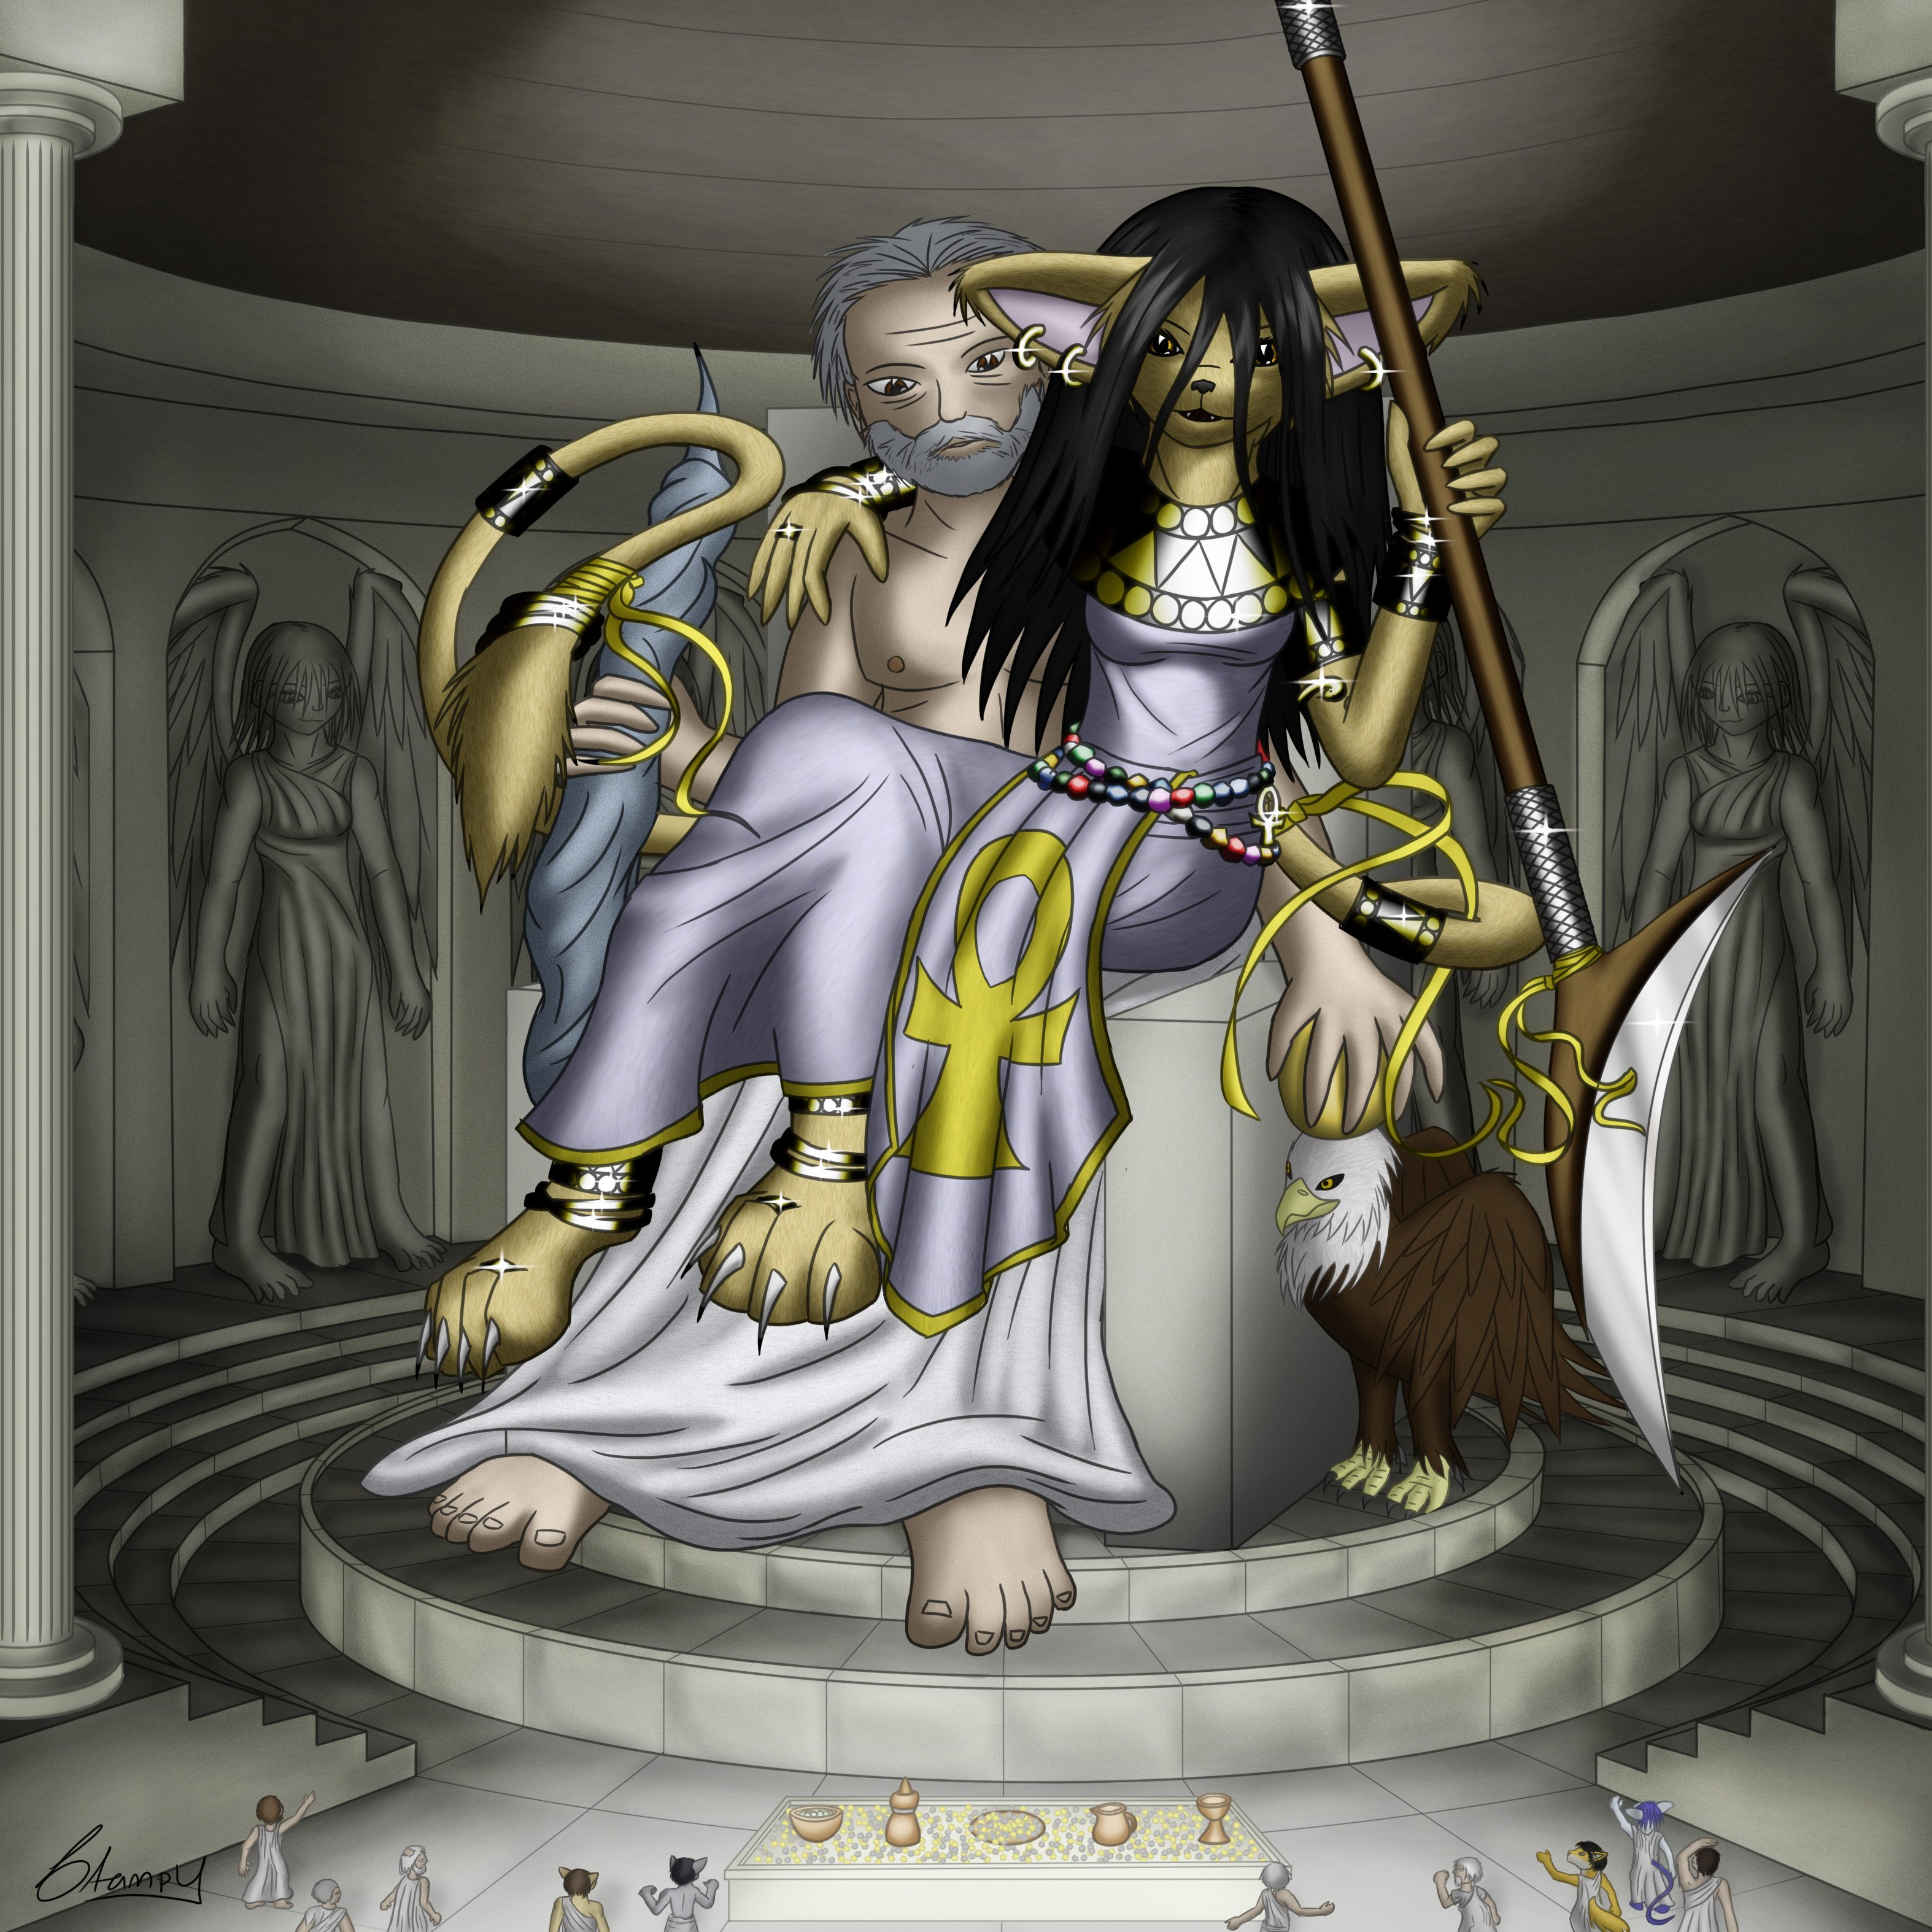 Statue of Zeus at Olympia by StampyDragon 3148x3148